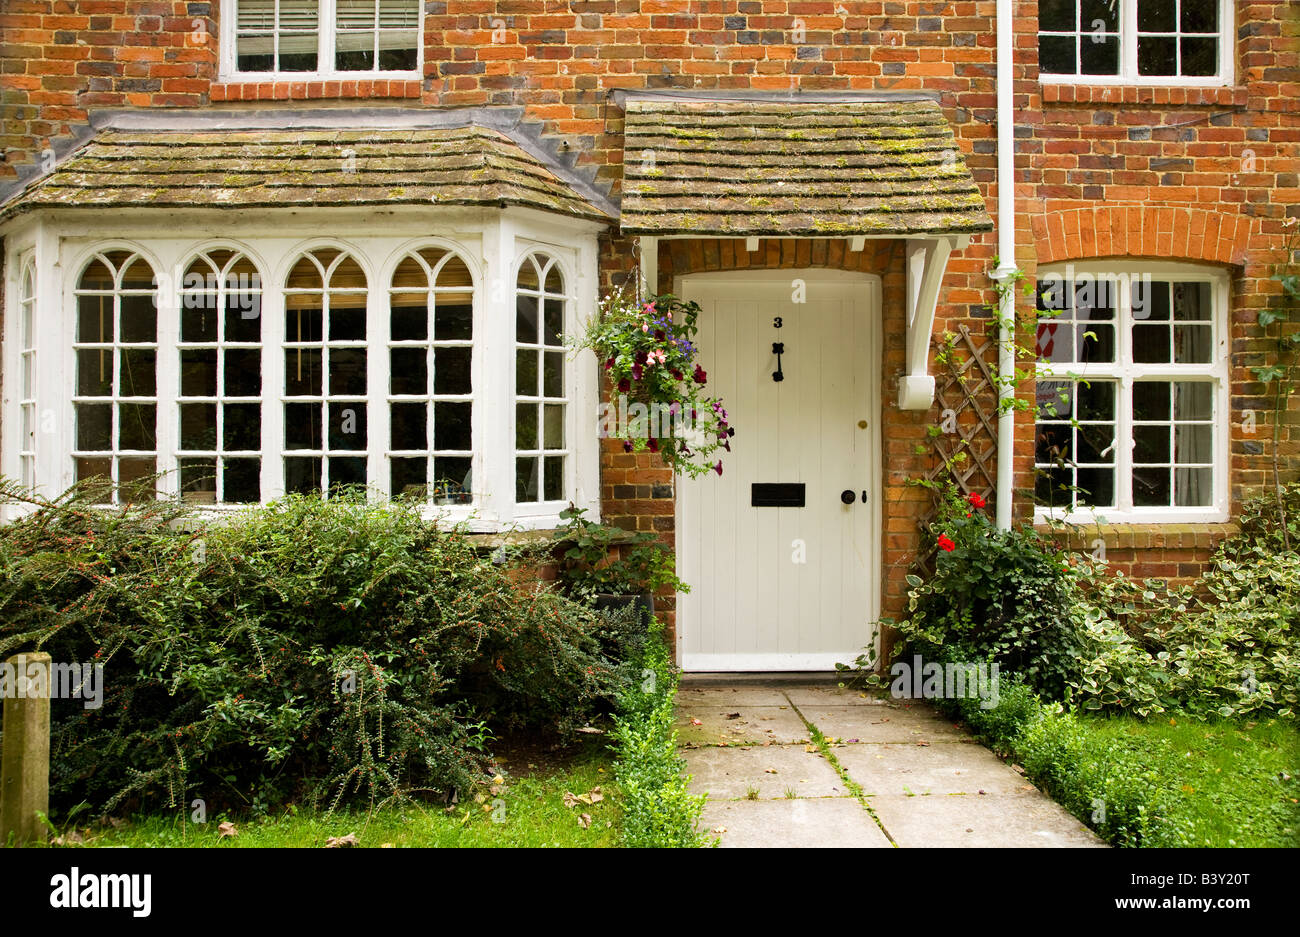 Typical English country house or cottage in Little Bedwyn,Wiltshire,England, UK - Stock Image